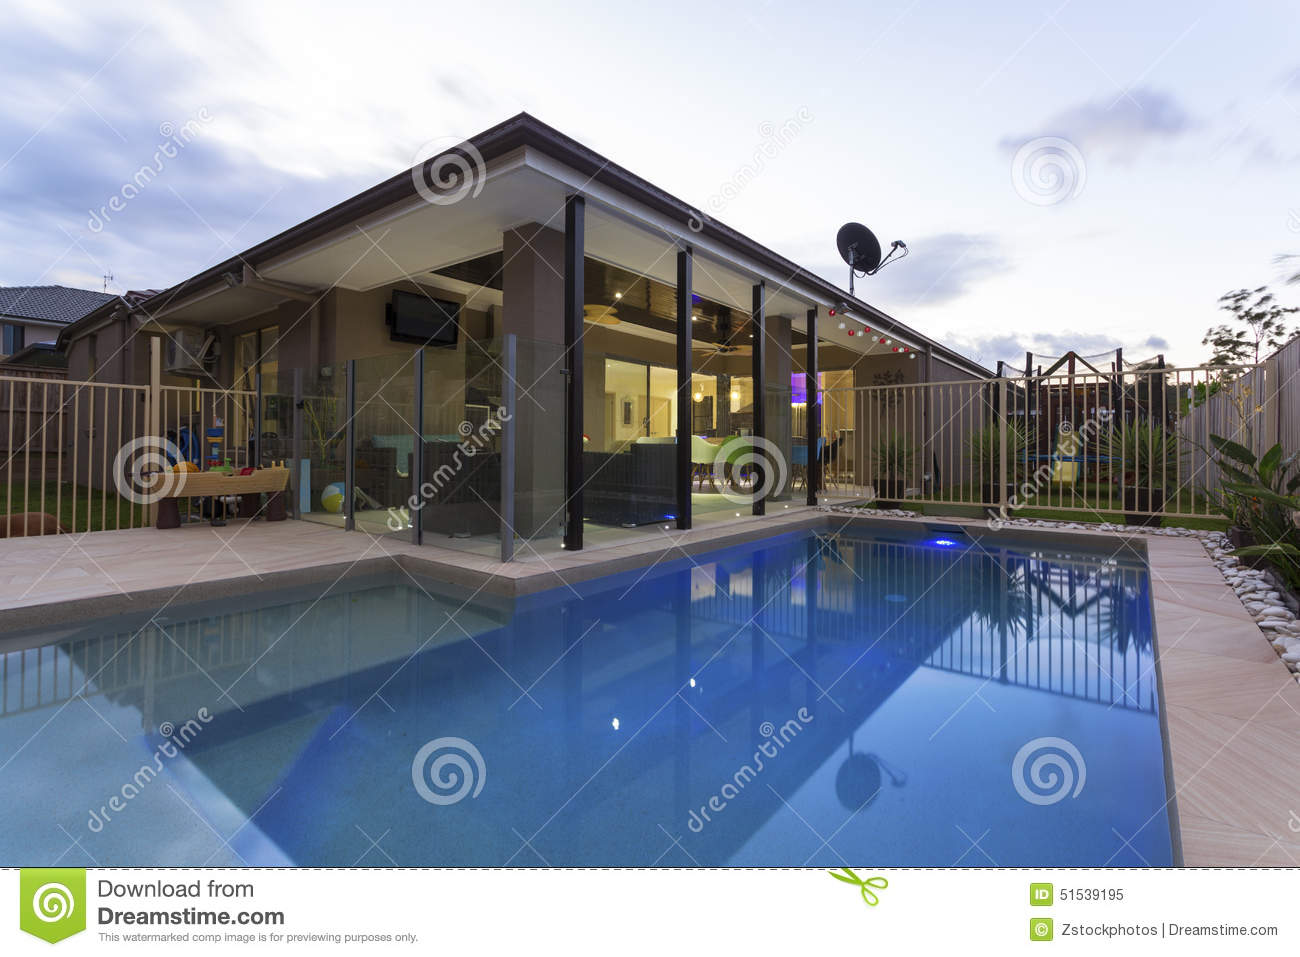 Swimming pool in backyard stock photo image 51539195 for Swimming pool entertaining areas